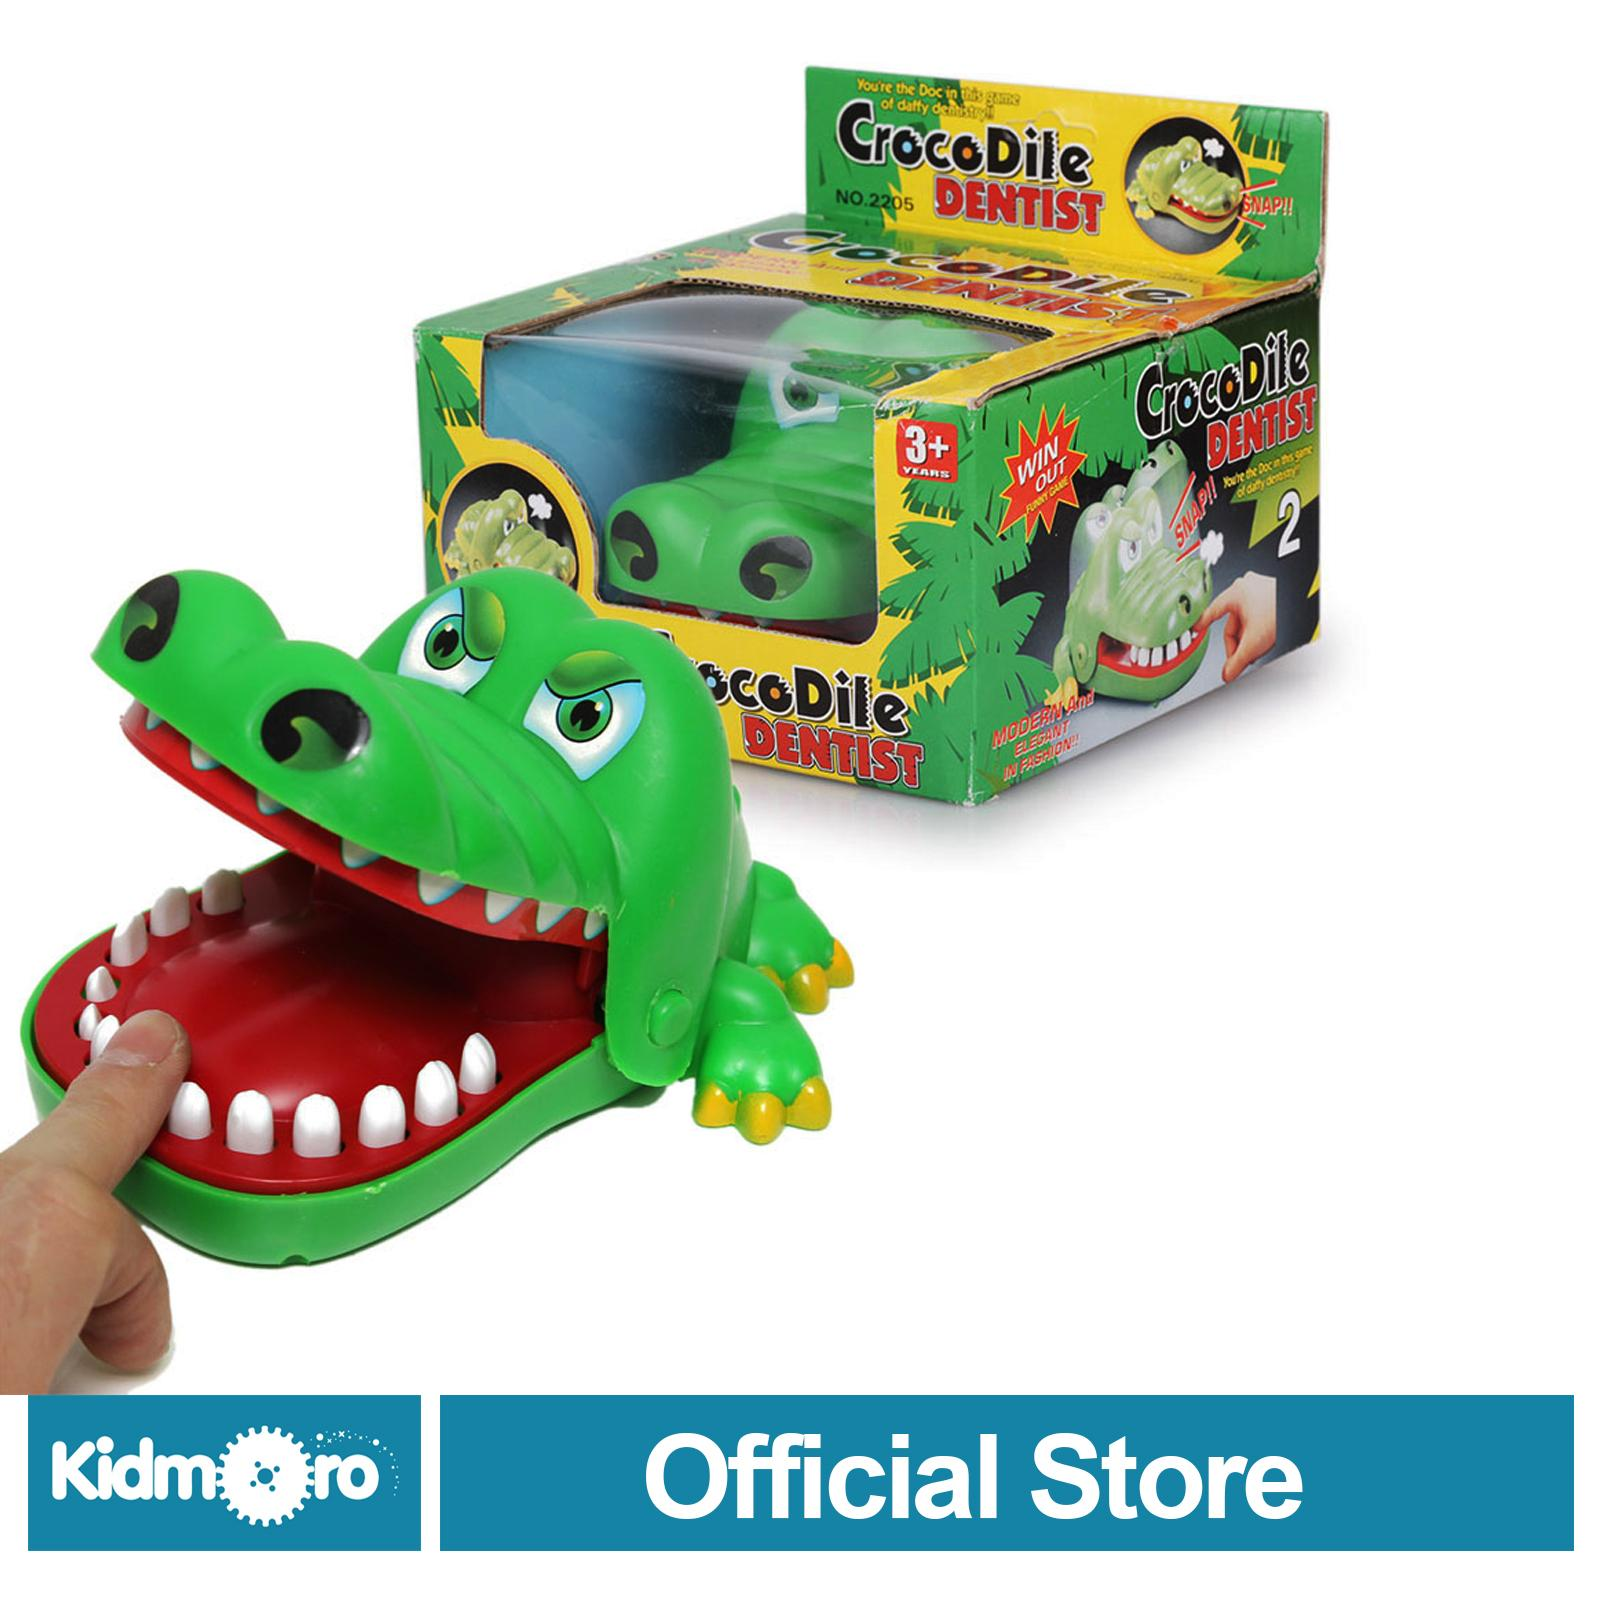 Crocodile Dentist Family Game Toys By Kidmoro.